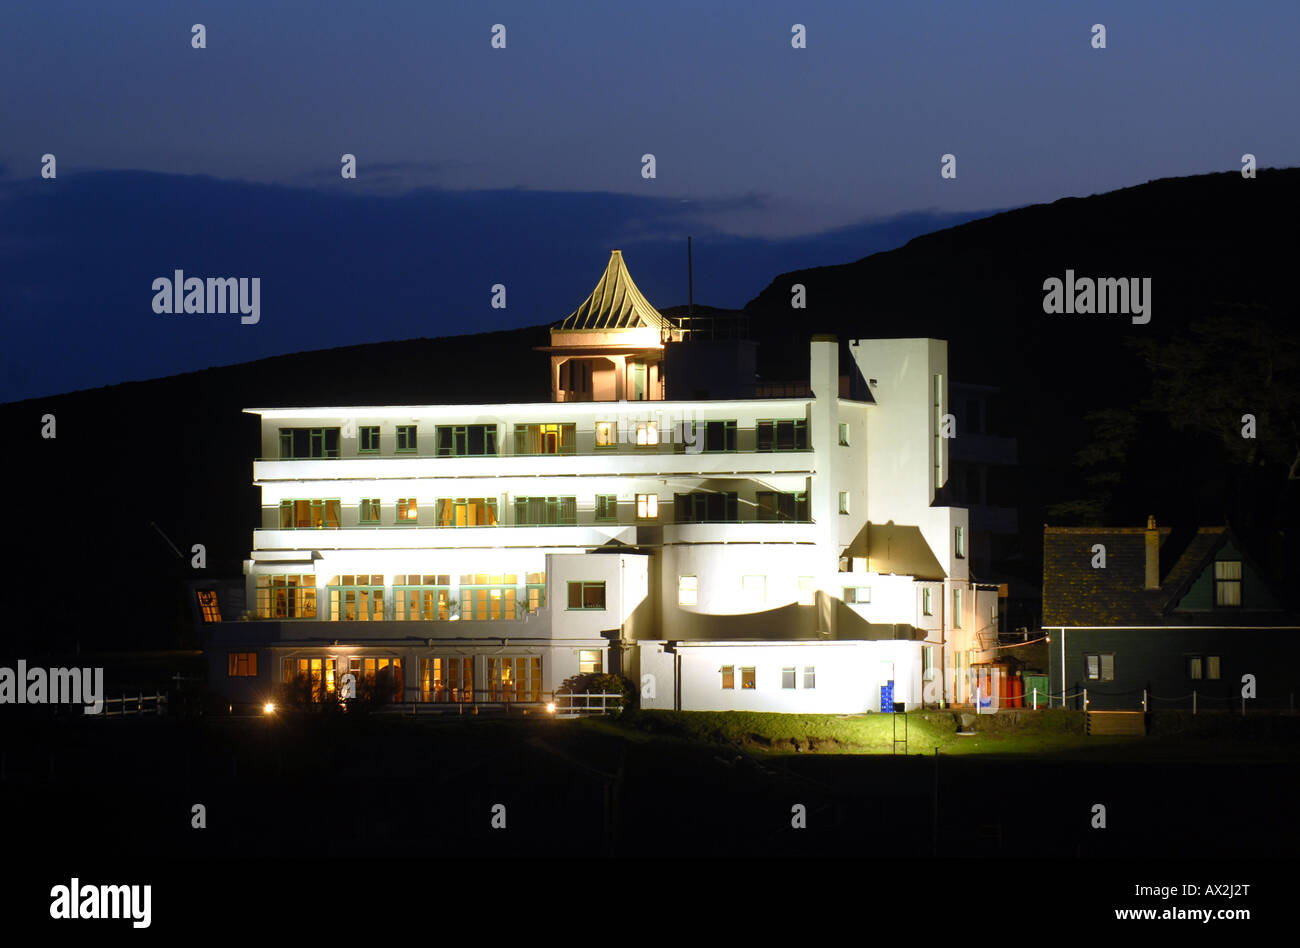 THE BURGH ISLAND HOTEL PICTURED AT NIGHT IN BIGBURY ON SEA,DEVON,ENGLAND. UK - Stock Image